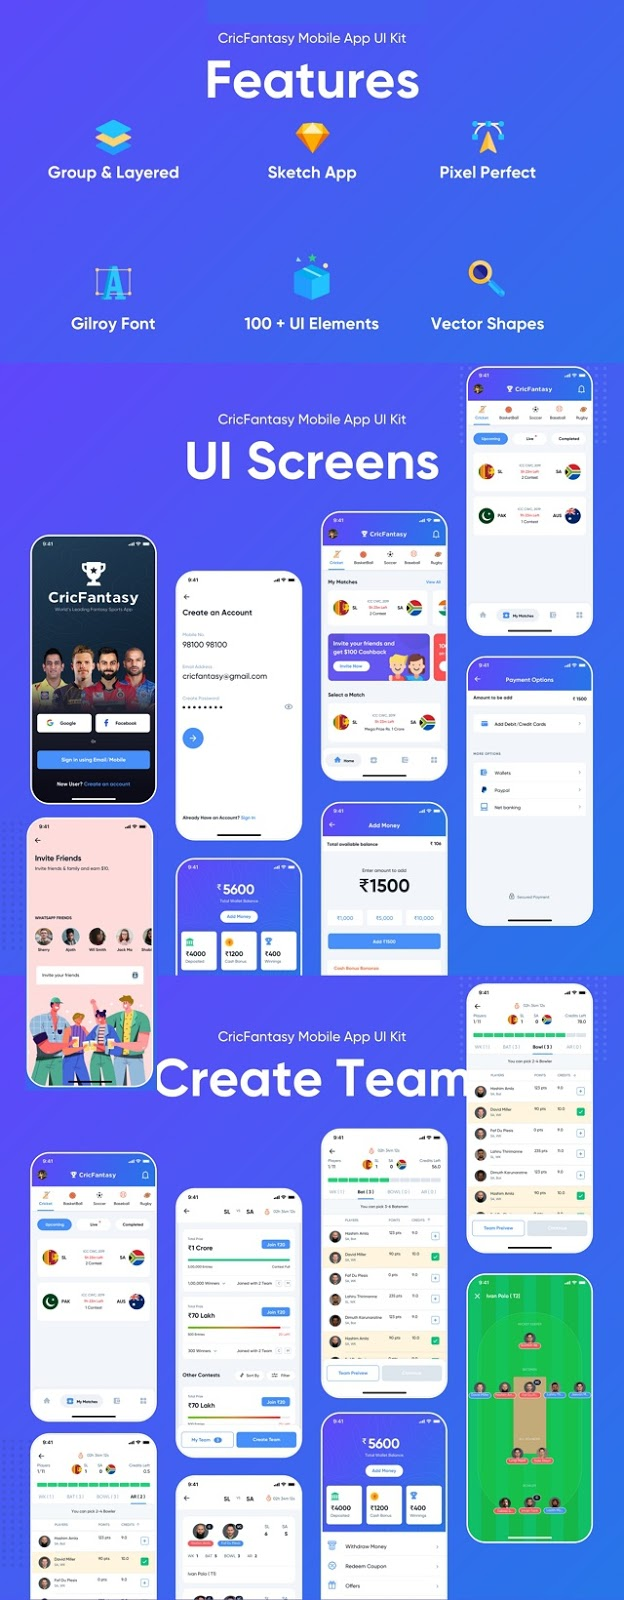 Best Sports Mobile App UI Kit